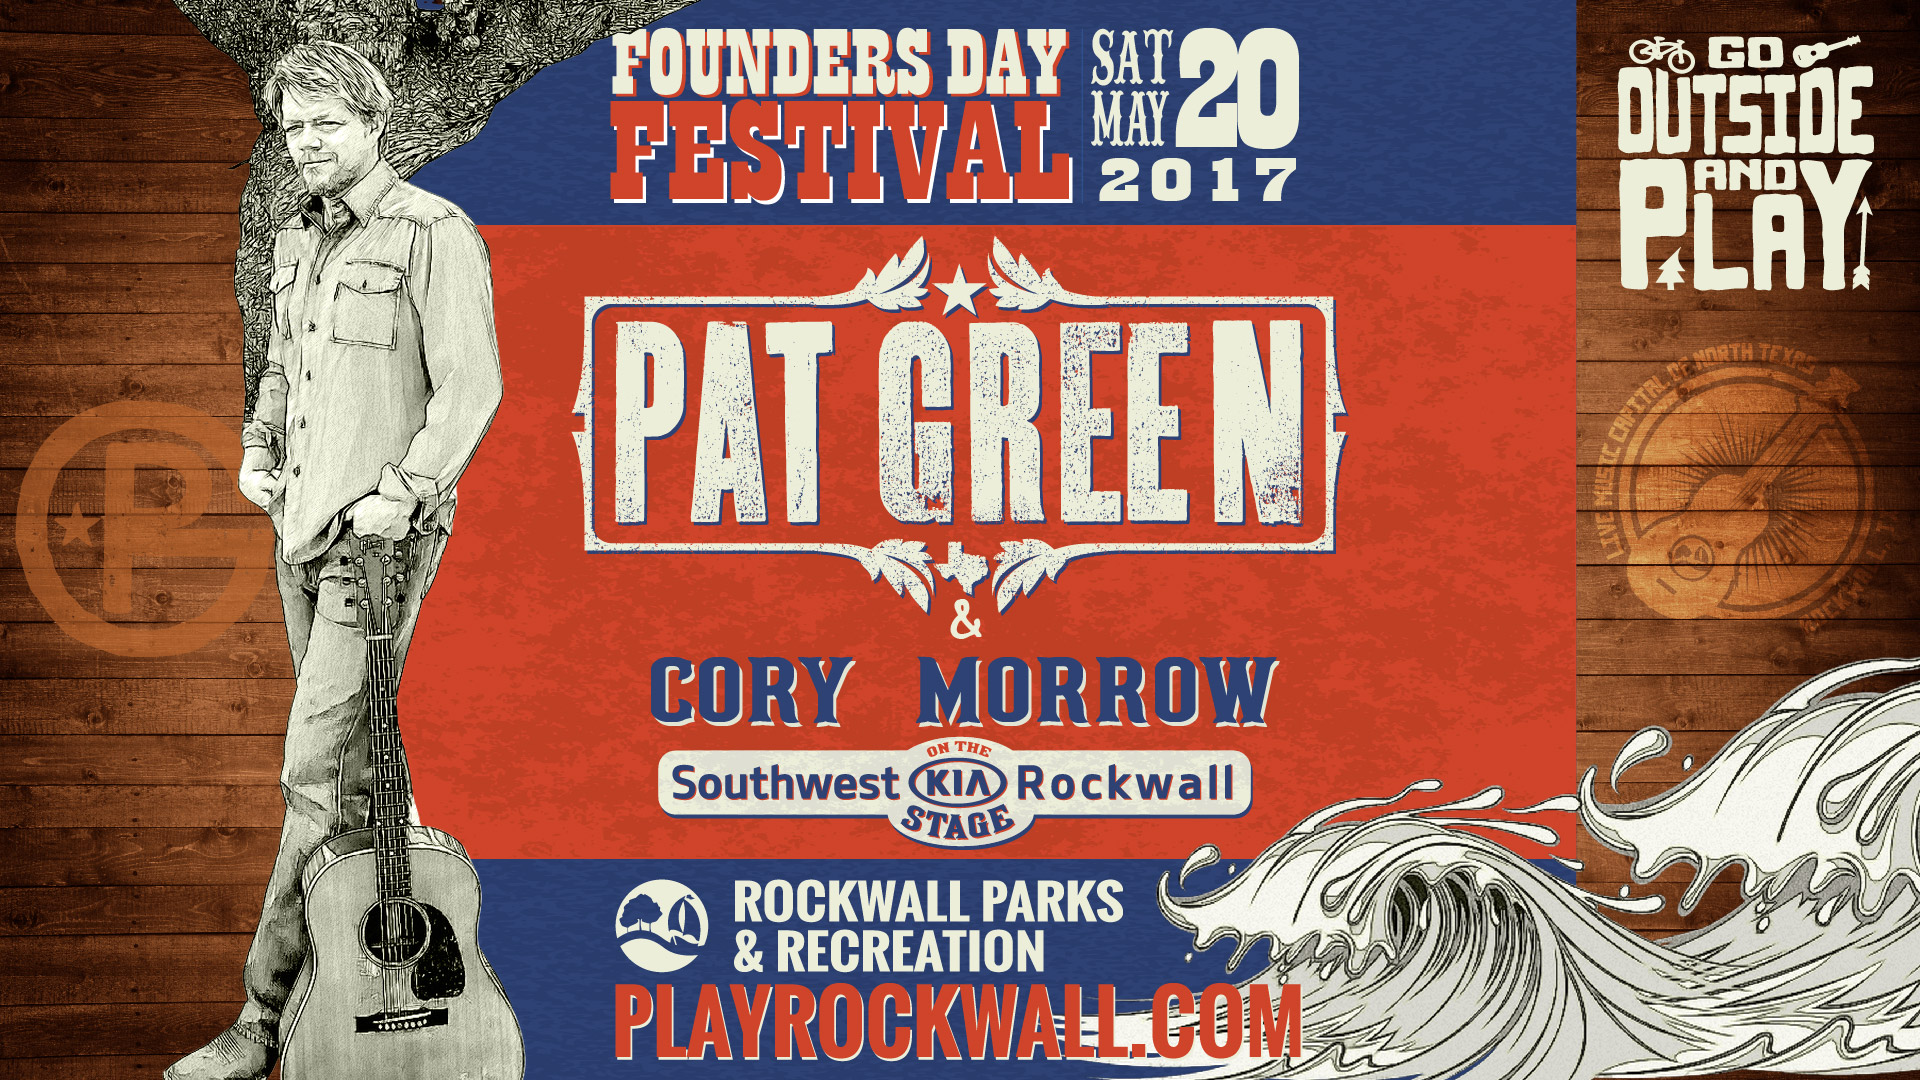 Southwest Kia Rockwall >> Play Rockwall Pat Green Cory Morrow To Play At The 2017